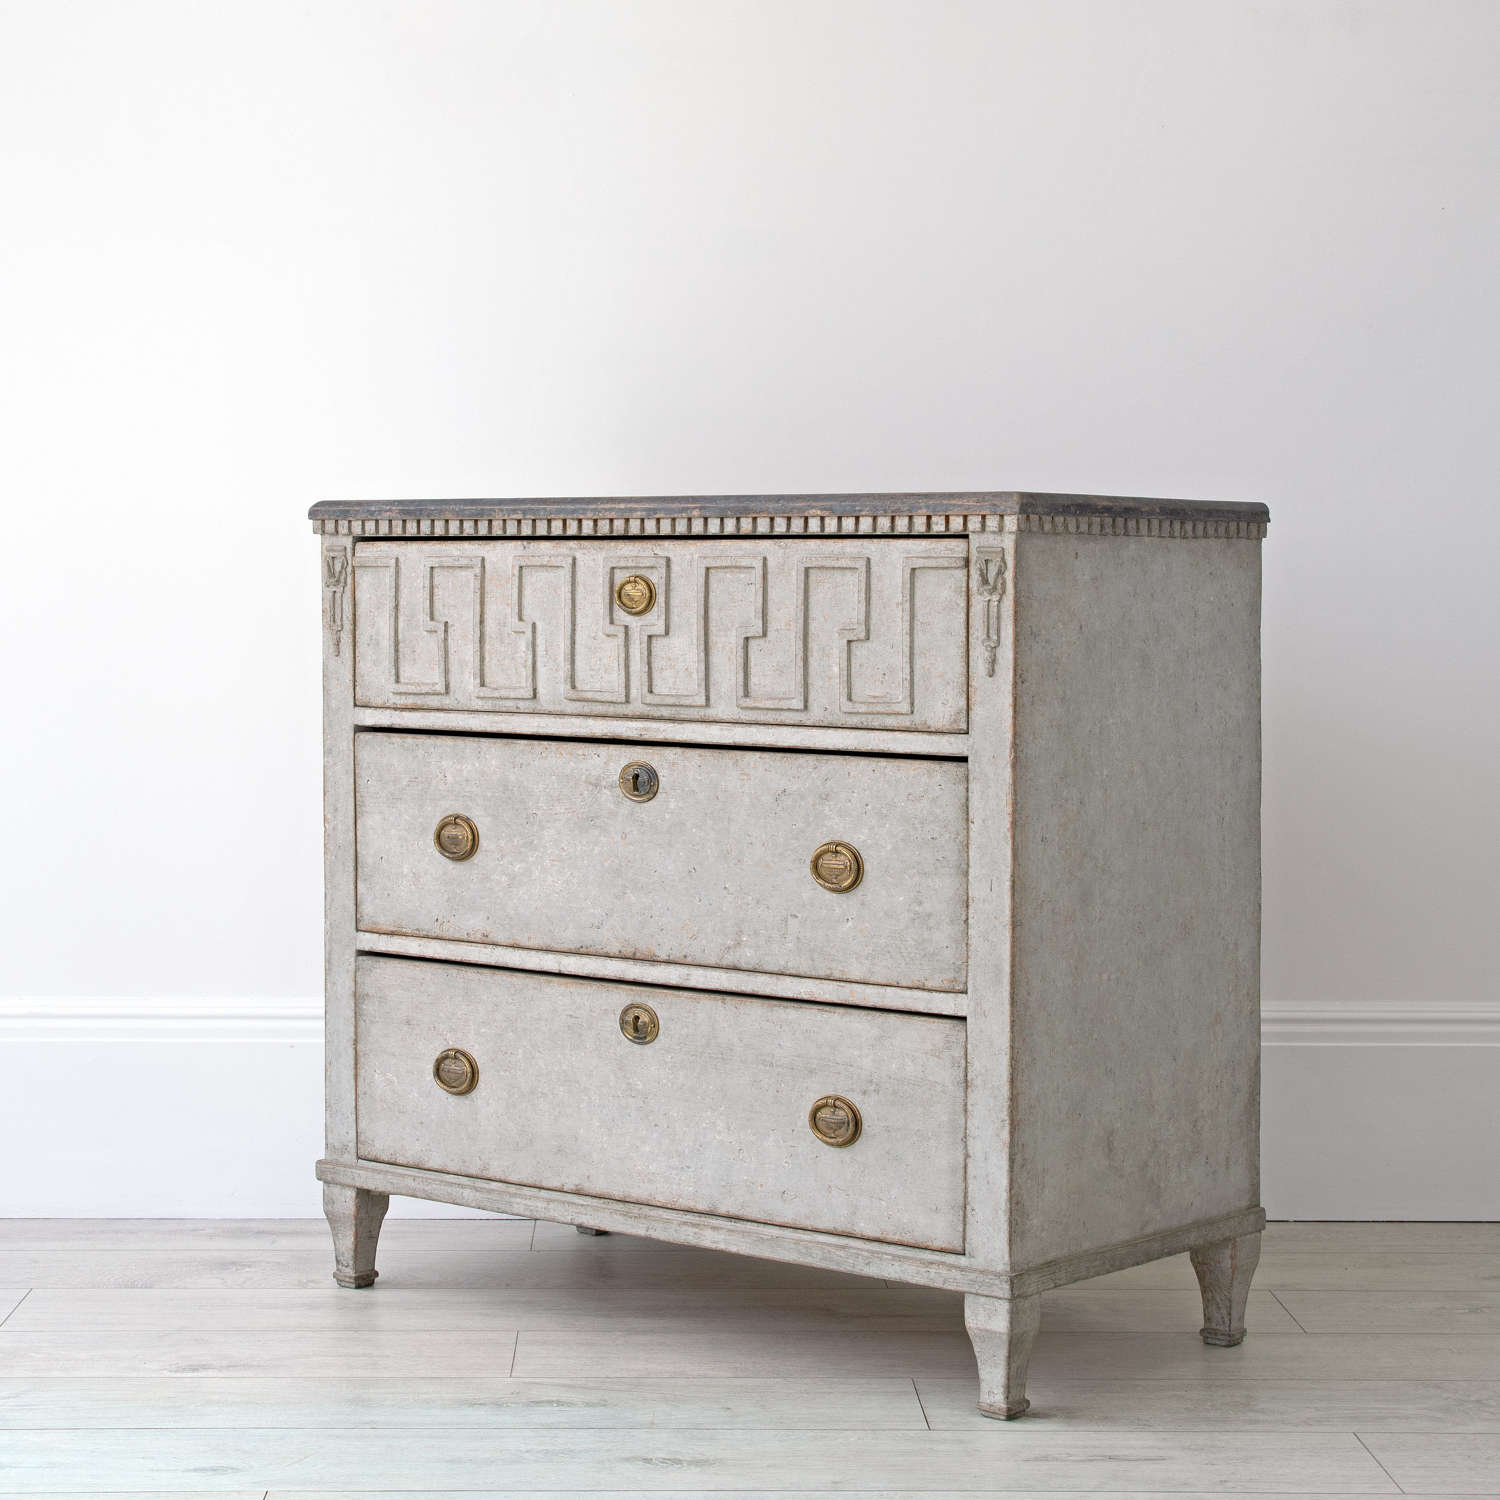 EMPIRE STYLE CHEST